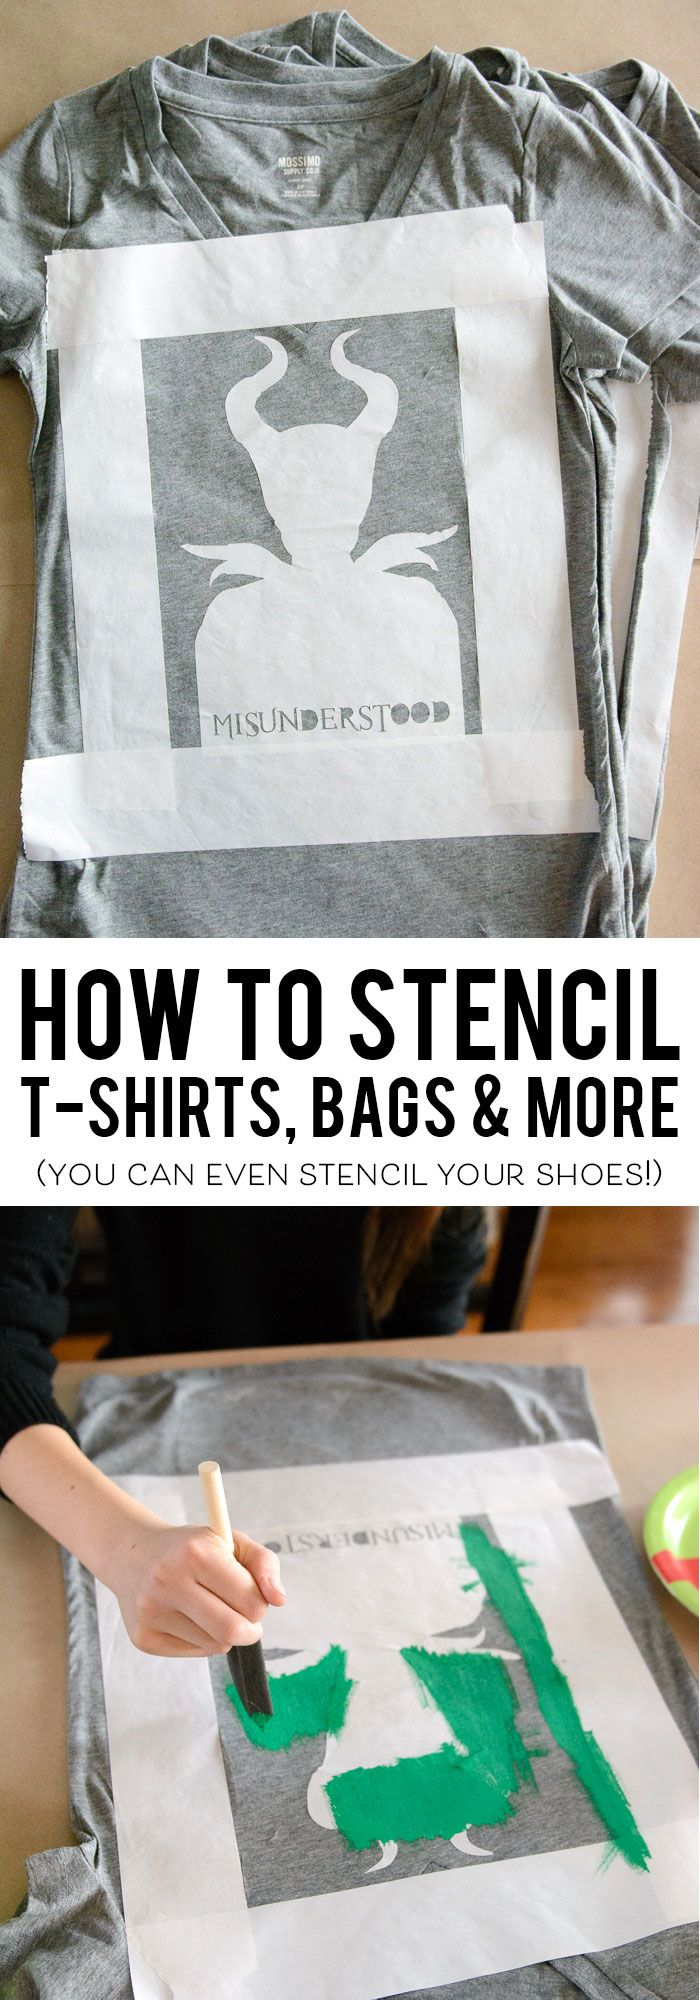 Design t shirt tips - Learn How To Use Freezer Paper To Make Custom Printed T Shirts Tote Bags